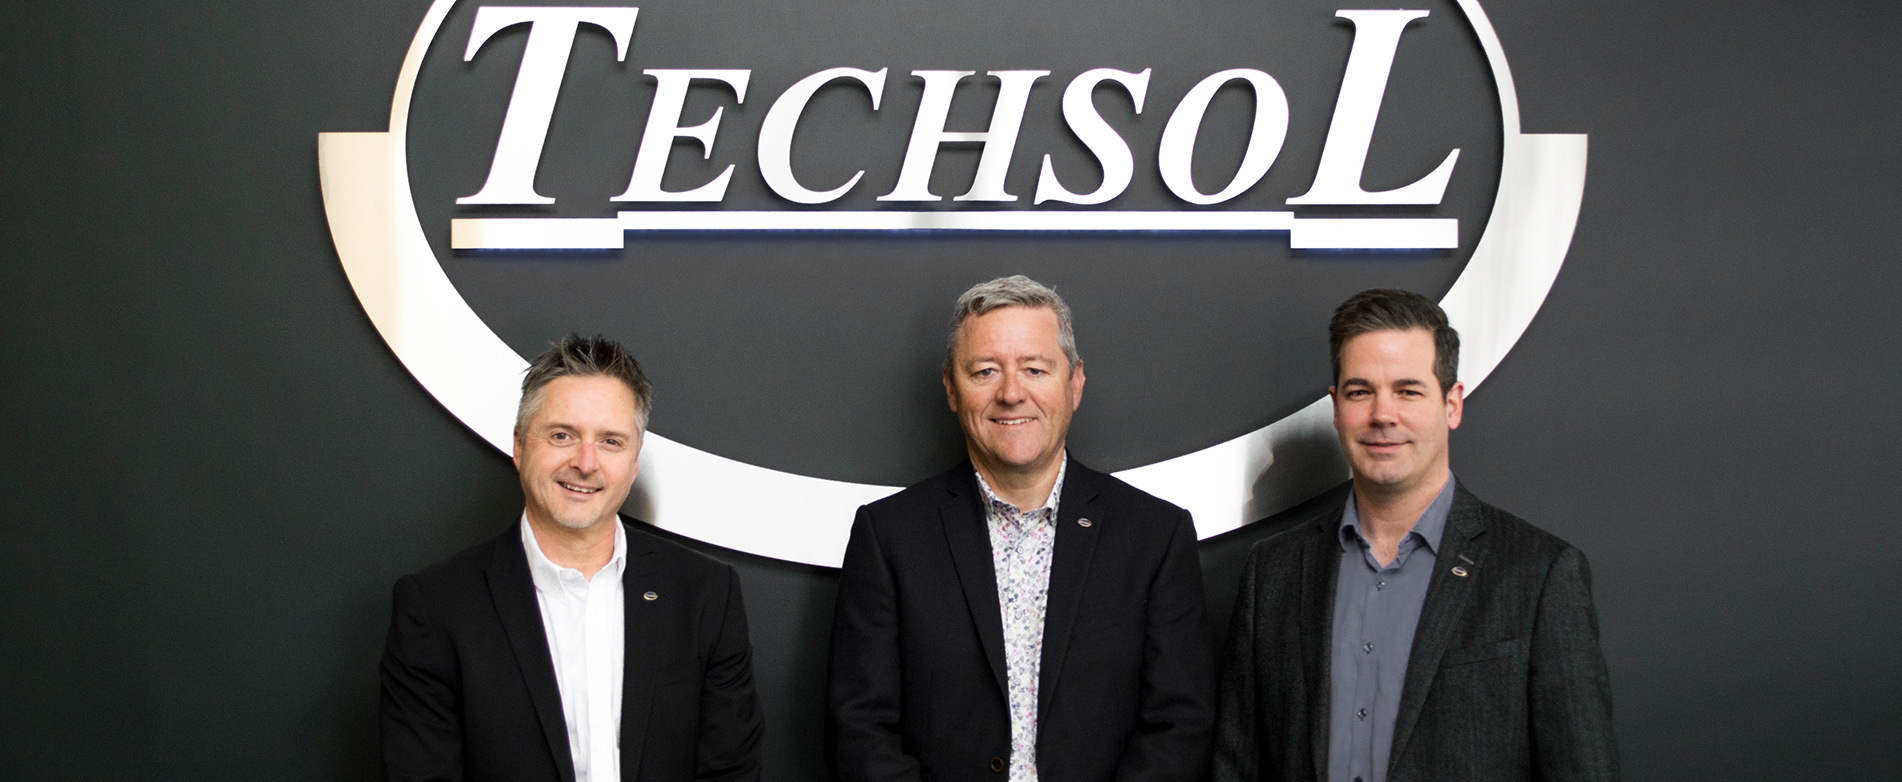 Ocean Group invests in Québec expertise by acquiring Techsol Marine